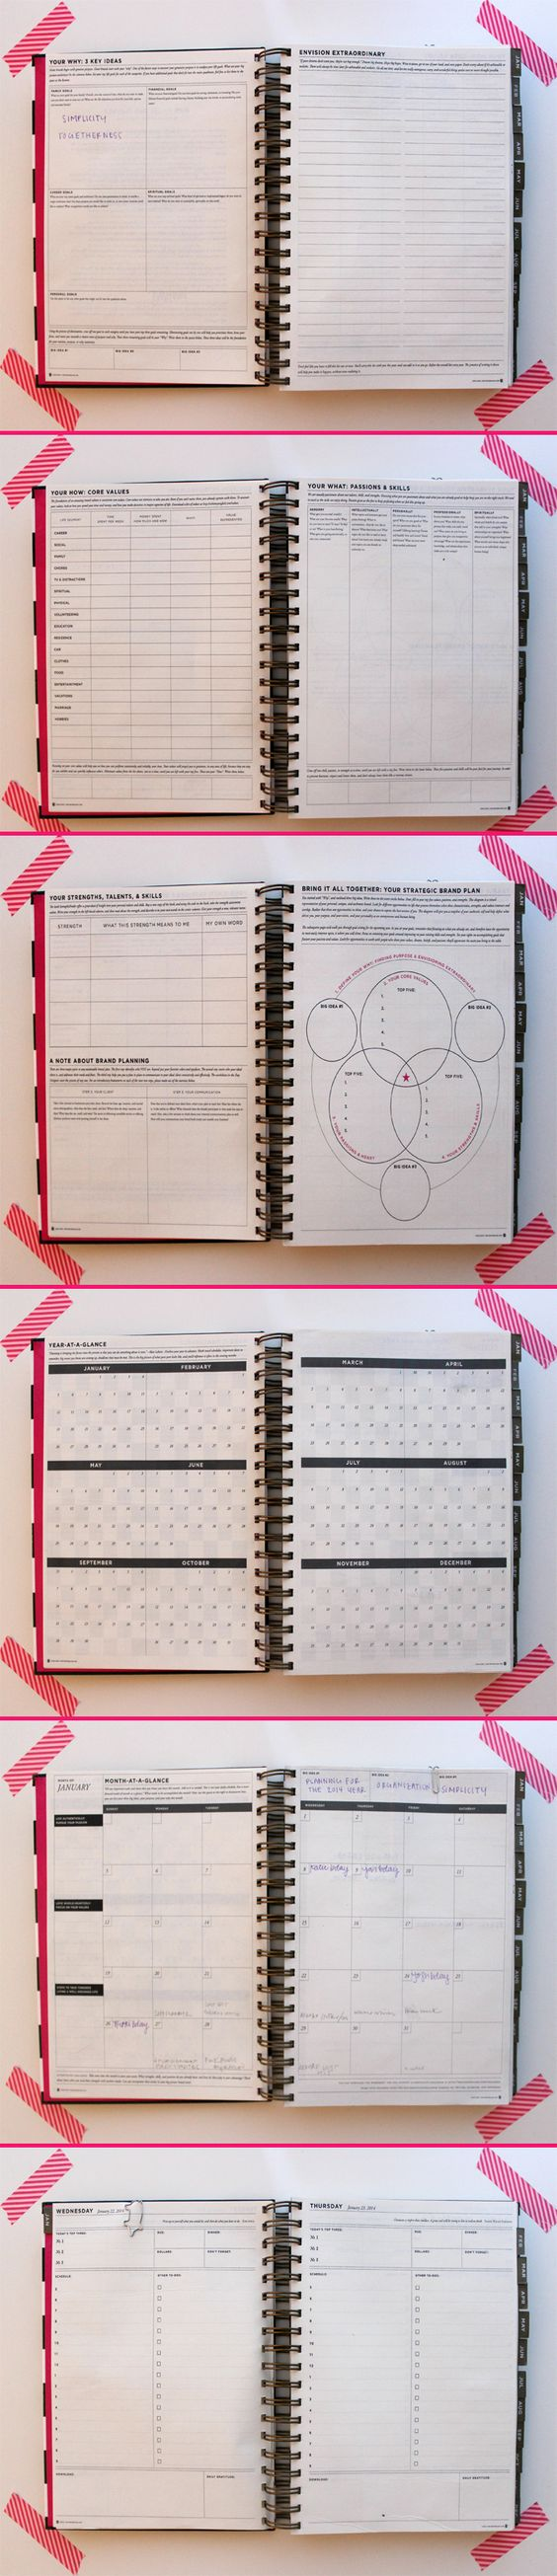 2014 planner whitney english day designer review pretty for Carpool calendar template